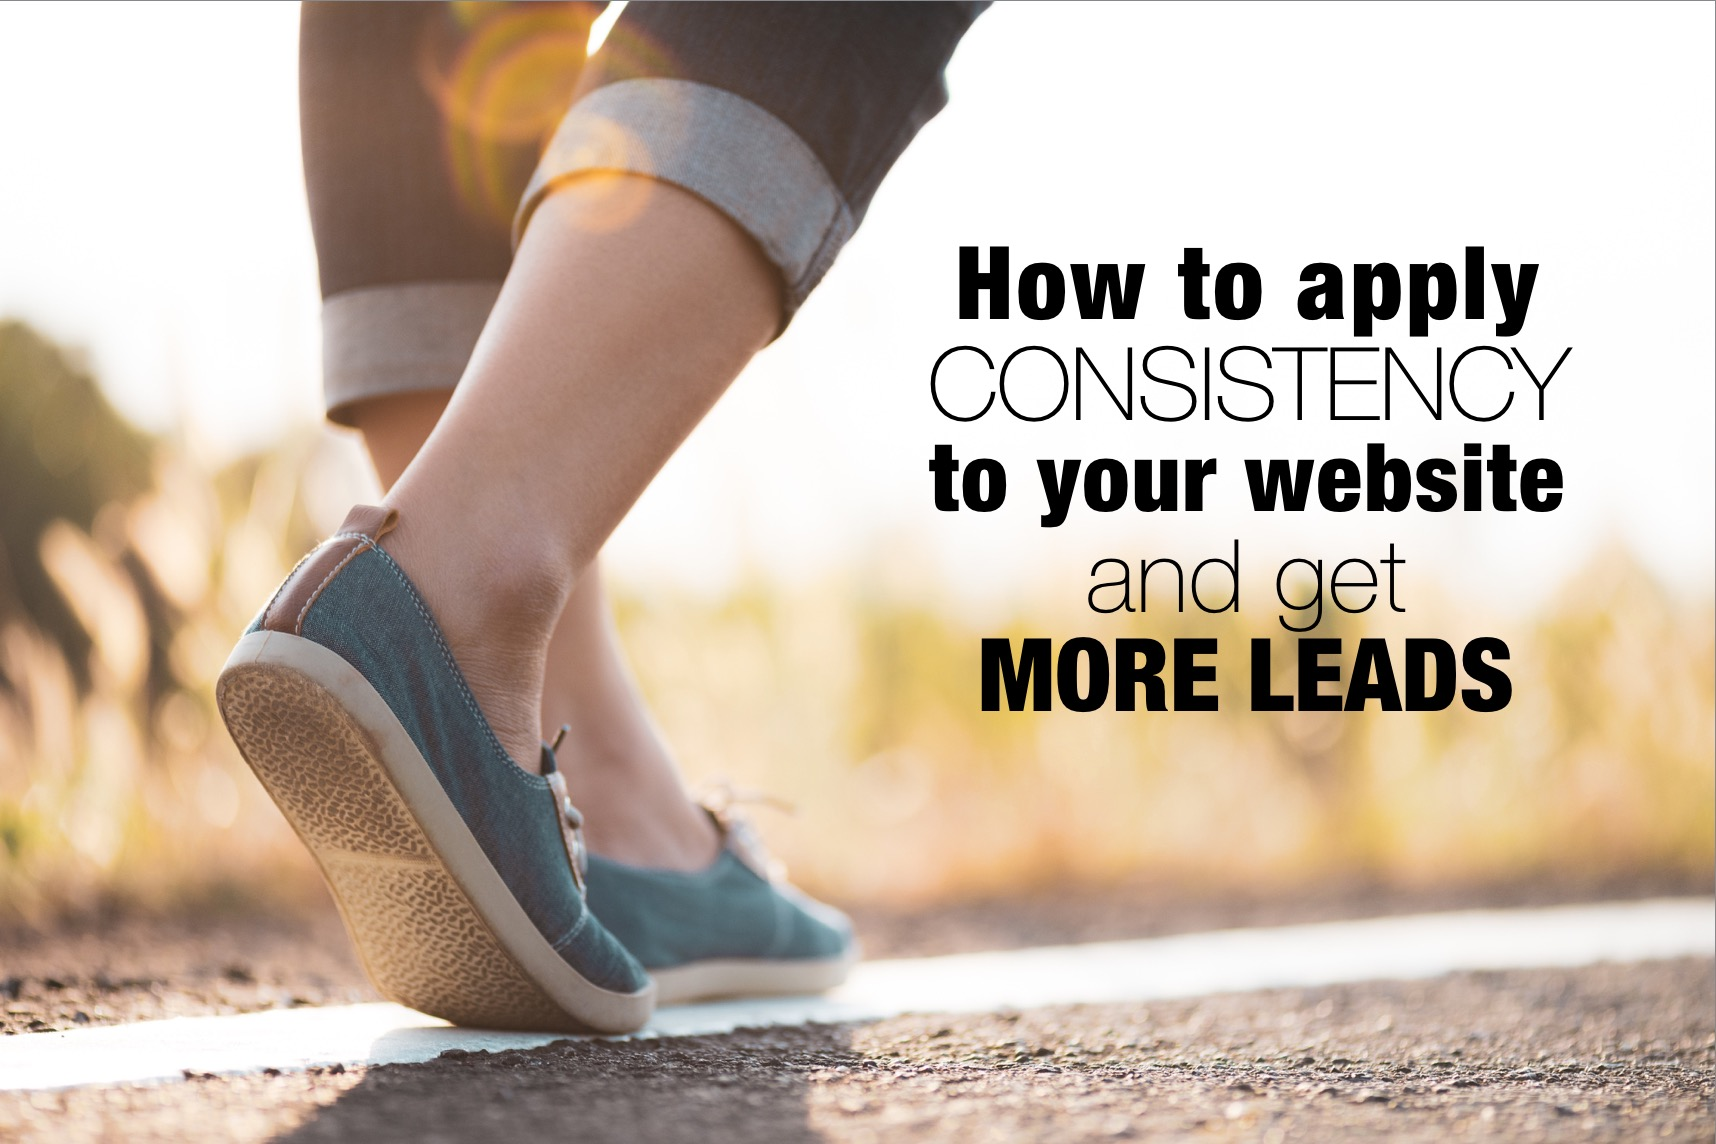 How to Apply Consistency to Your Website to Get More Leads